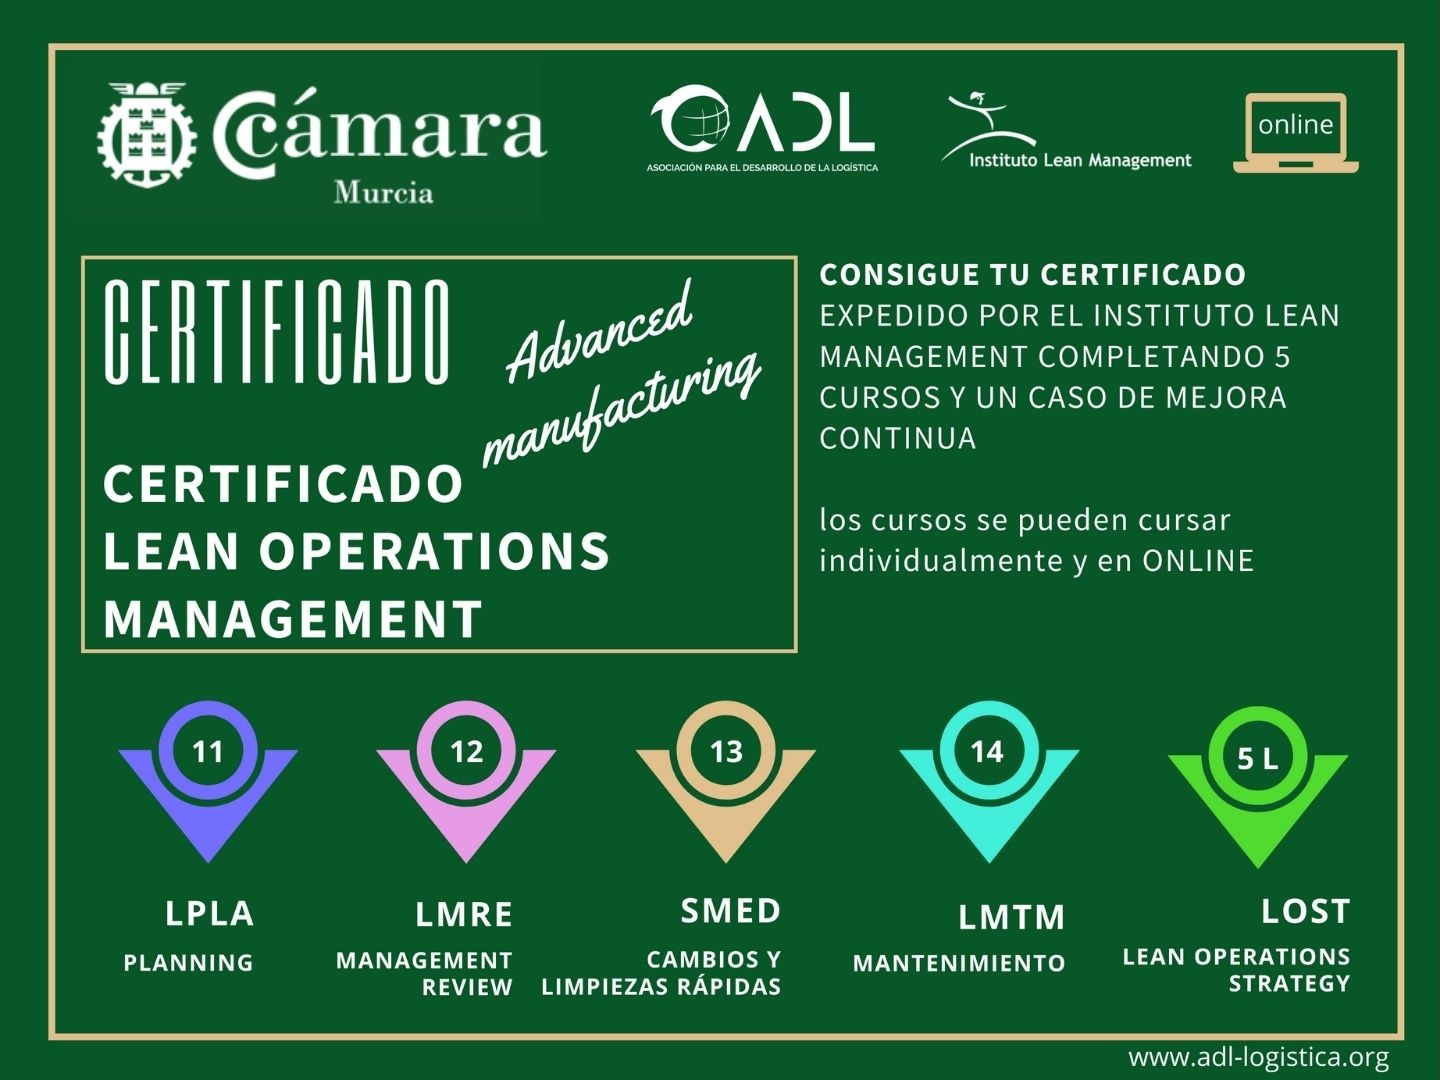 Certificado Lean Operations Management - Cámara Comercio Murcia